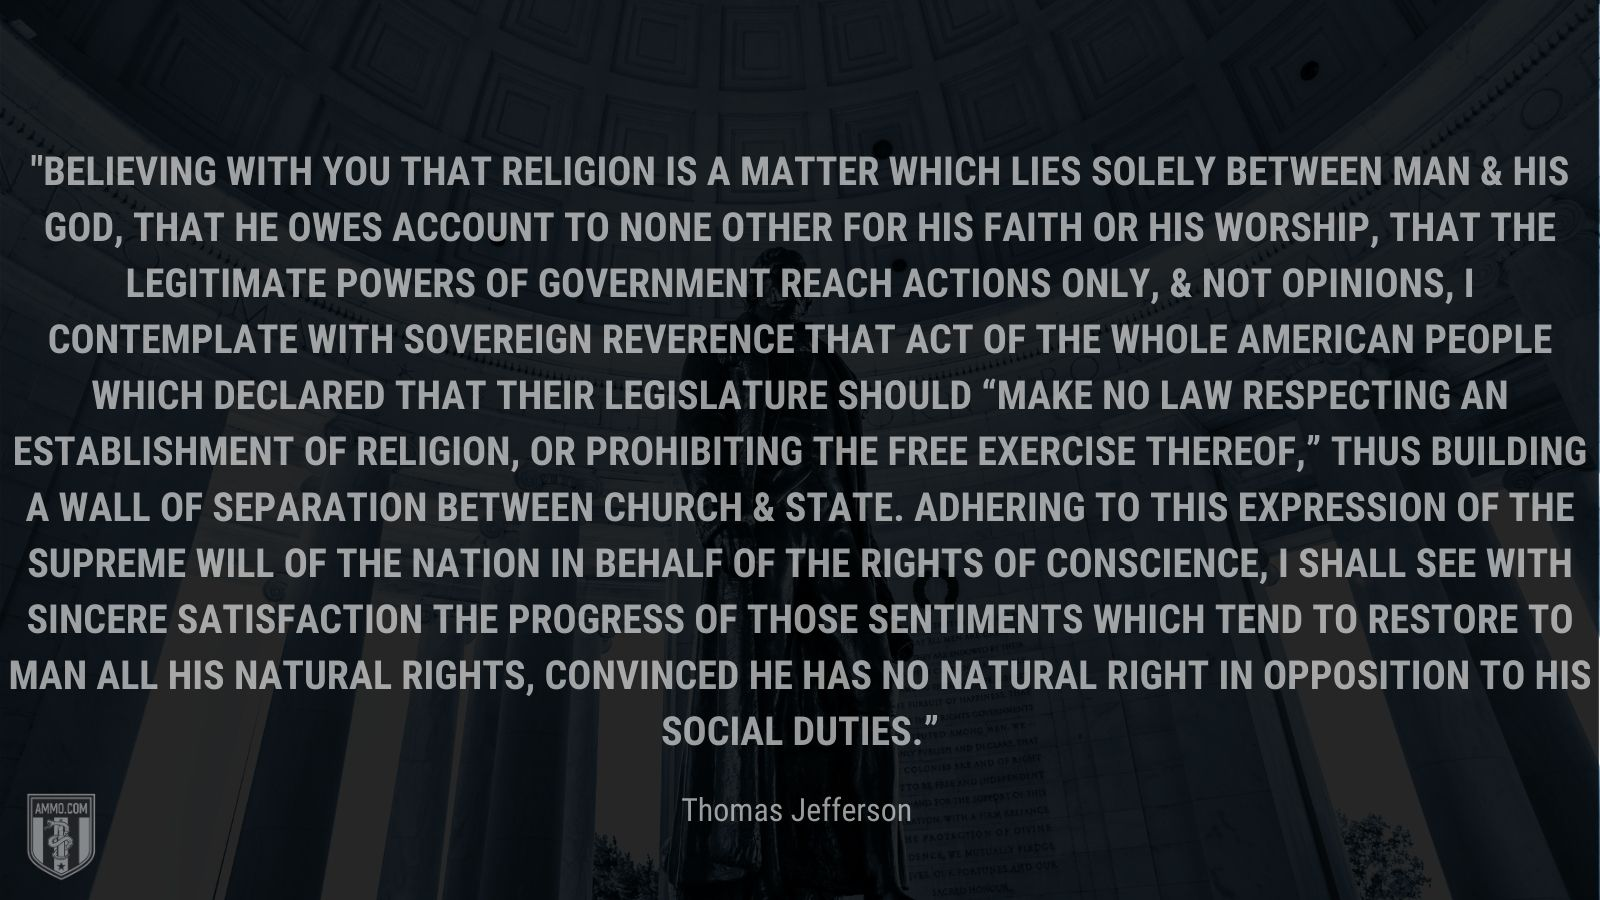 """""""Believing with you that religion is a matter which lies solely between Man & his God, that he owes account to none other for his faith or his worship, that the legitimate powers of government reach actions only, & not opinions, I contemplate with sovereign reverence that act of the whole American people which declared that their legislature should """"make no law respecting an establishment of religion, or prohibiting the free exercise thereof,"""" thus building a wall of separation between Church & State. Adhering to this expression of the supreme will of the nation in behalf of the rights of conscience, I shall see with sincere satisfaction the progress of those sentiments which tend to restore to man all his natural rights, convinced he has no natural right in opposition to his social duties."""" - Thomas Jefferson"""